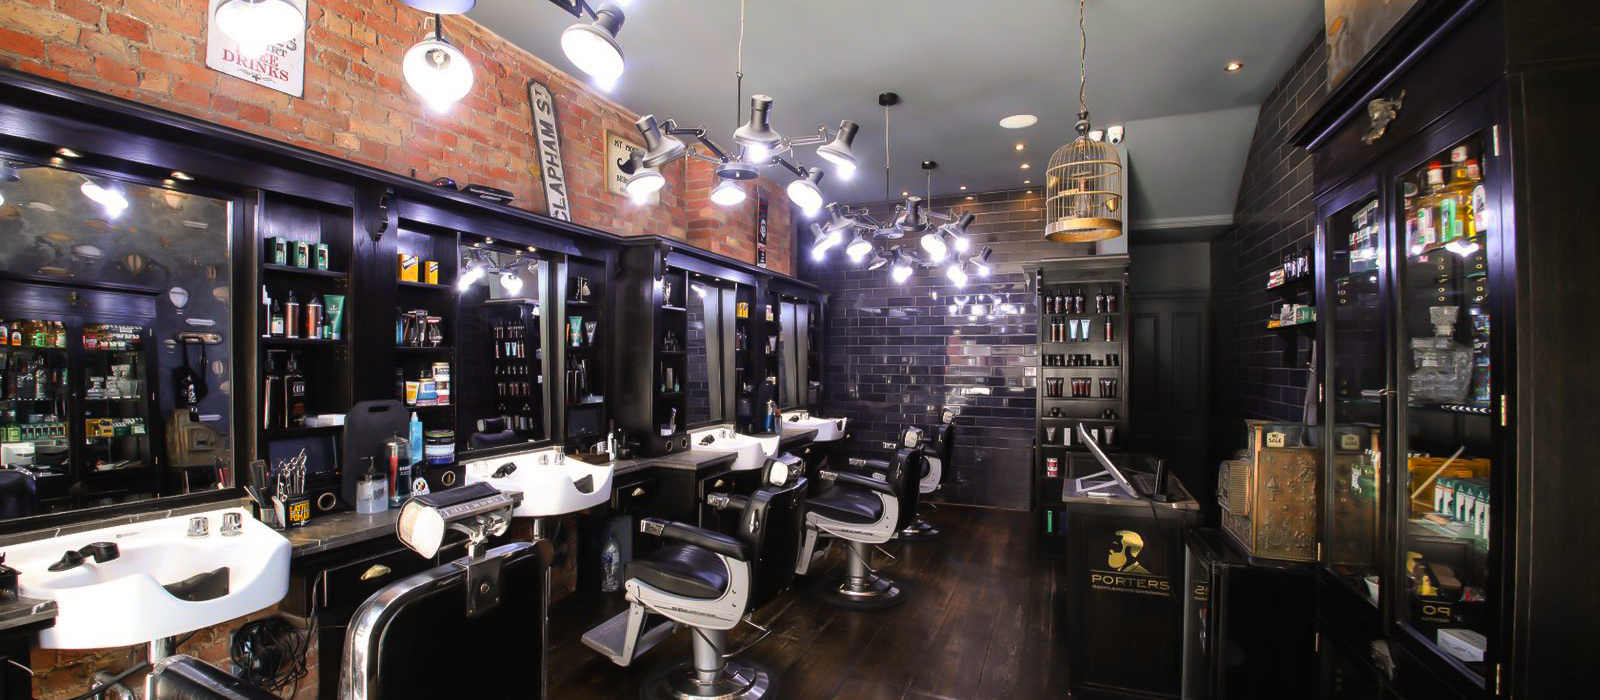 https://www.portersbarbers.co.uk/wp-content/uploads/Clapham-Porters-Barbers-Interior-4-2.jpg